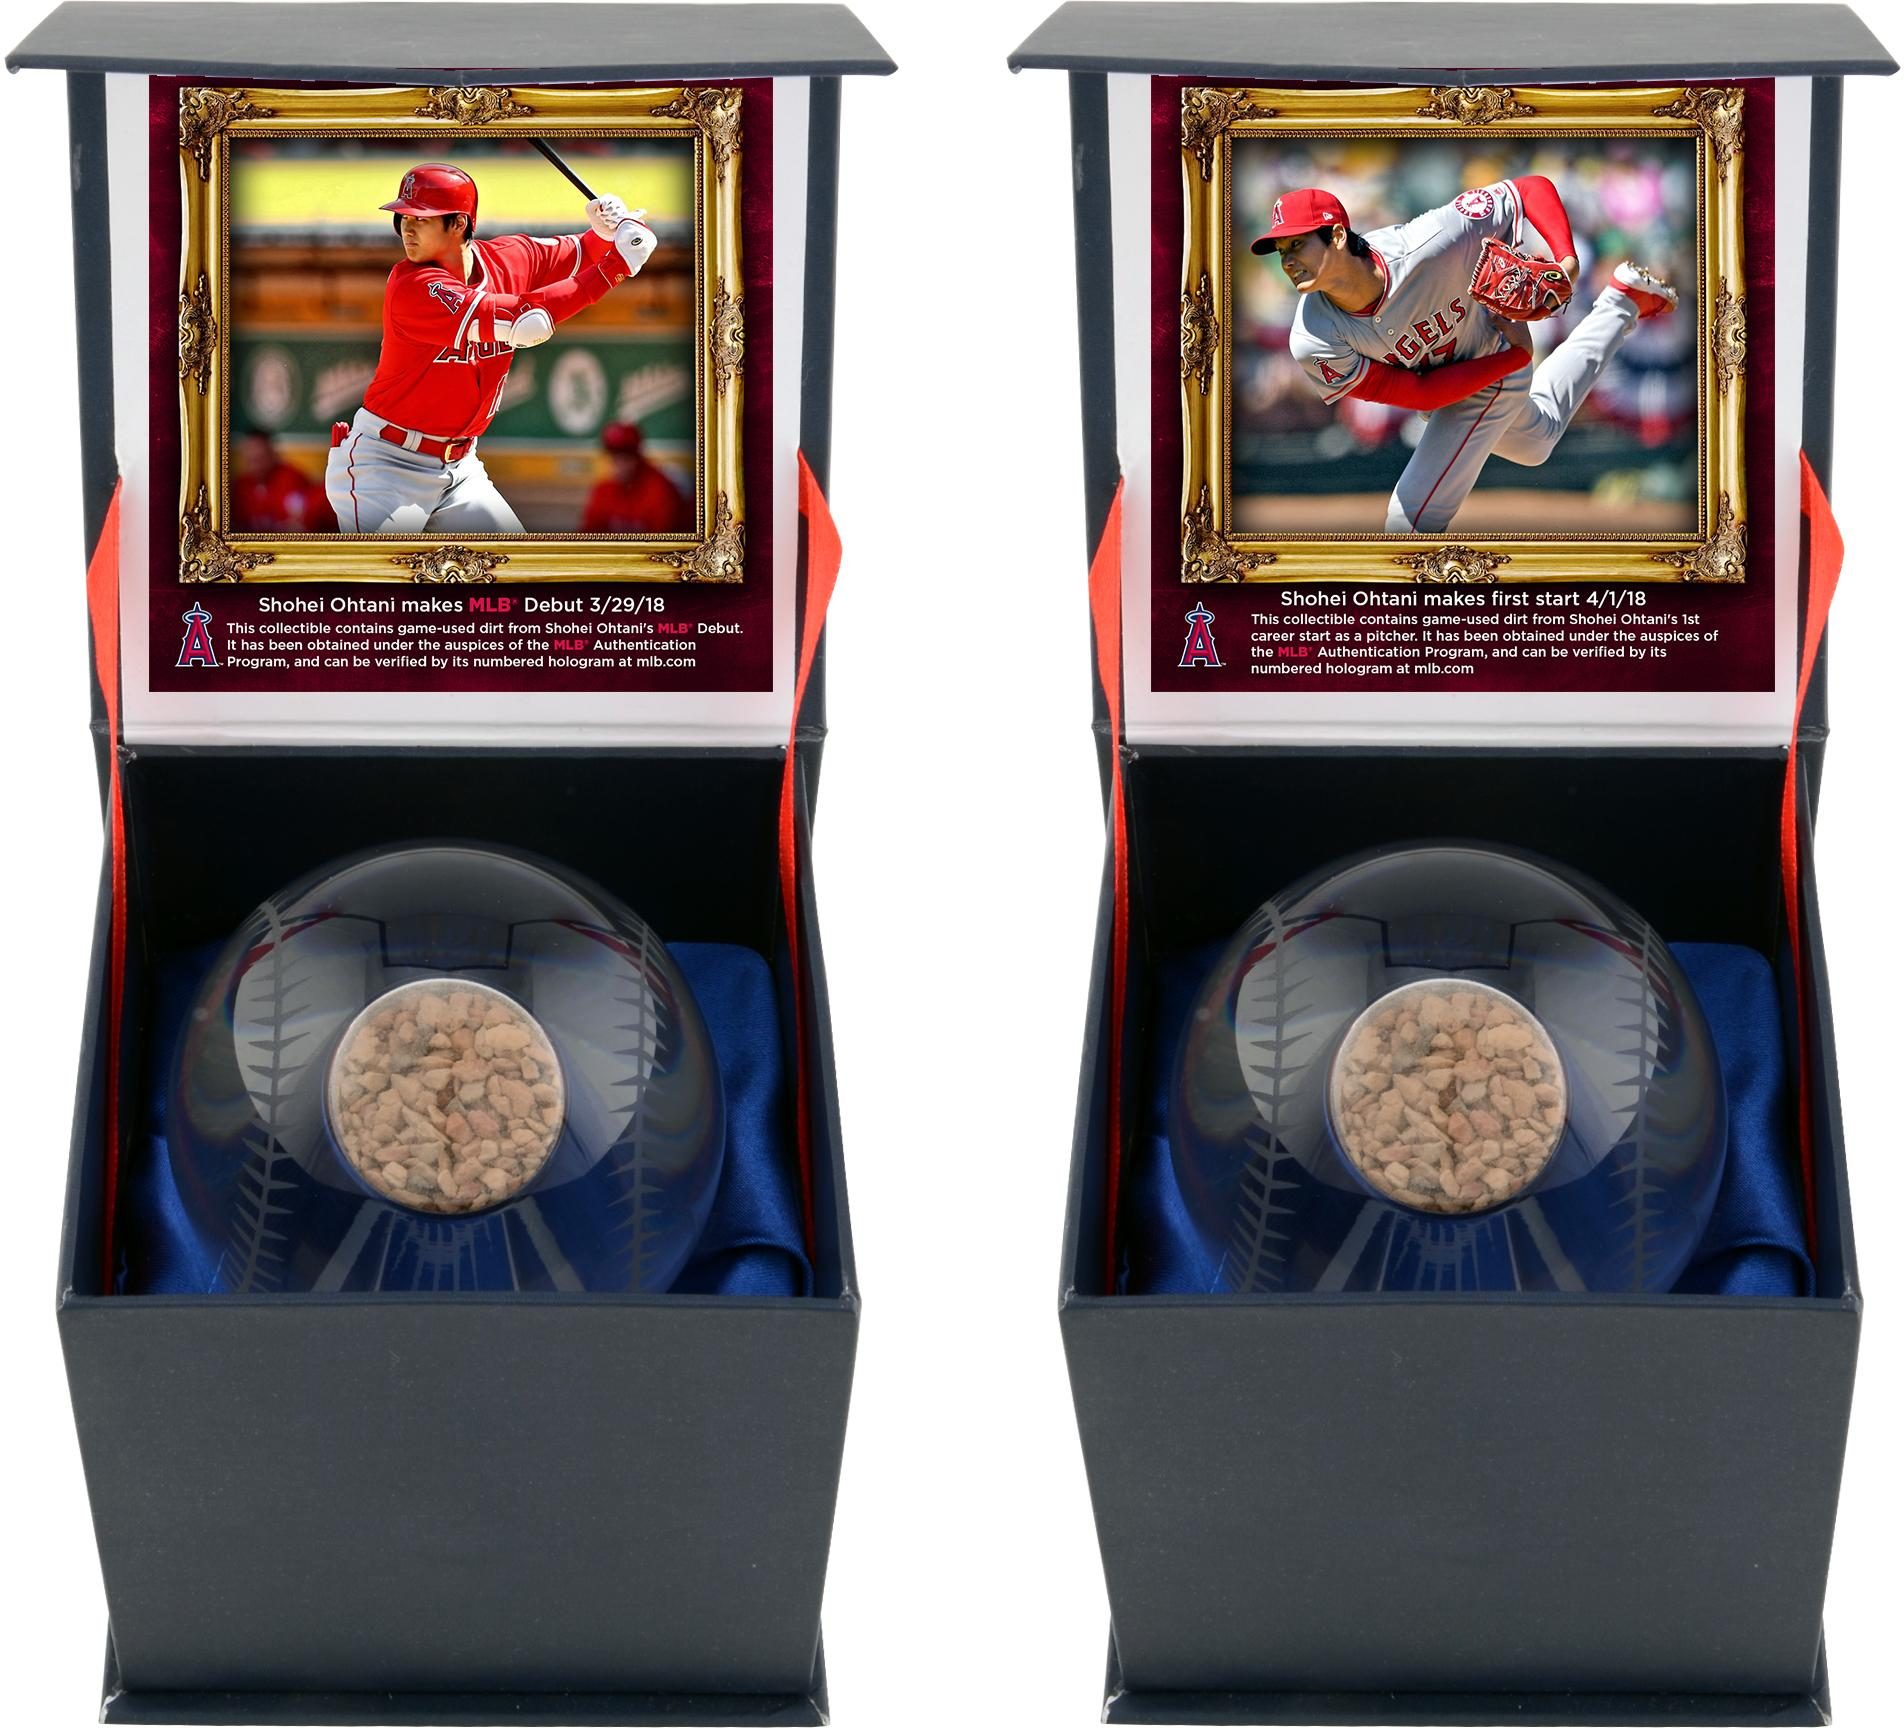 Shohei Ohtani Los Angeles Angels Two Crystal Baseball Bundle with Game-Used Dirt from MLB Debut and 1st Career Pitching Start - Fanatics Authentic Certified